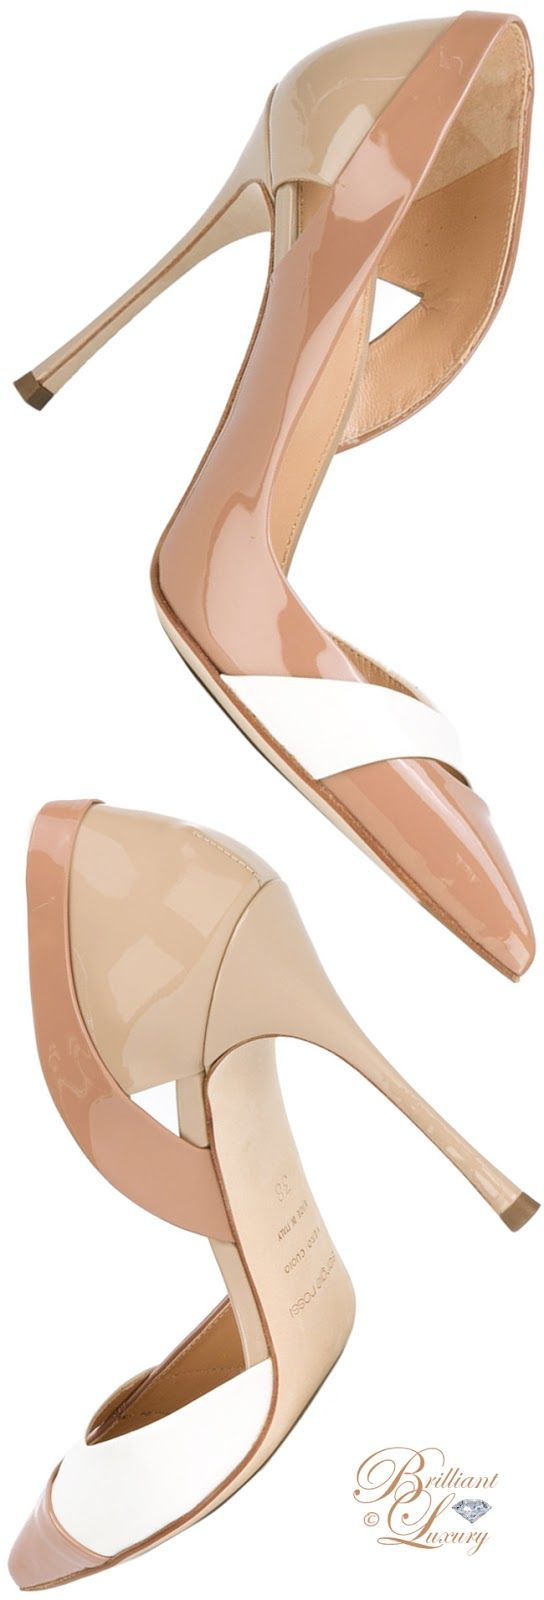 Brilliant Luxury by Emmy DE ♦ Sergio Rossi Slip-On Pumps